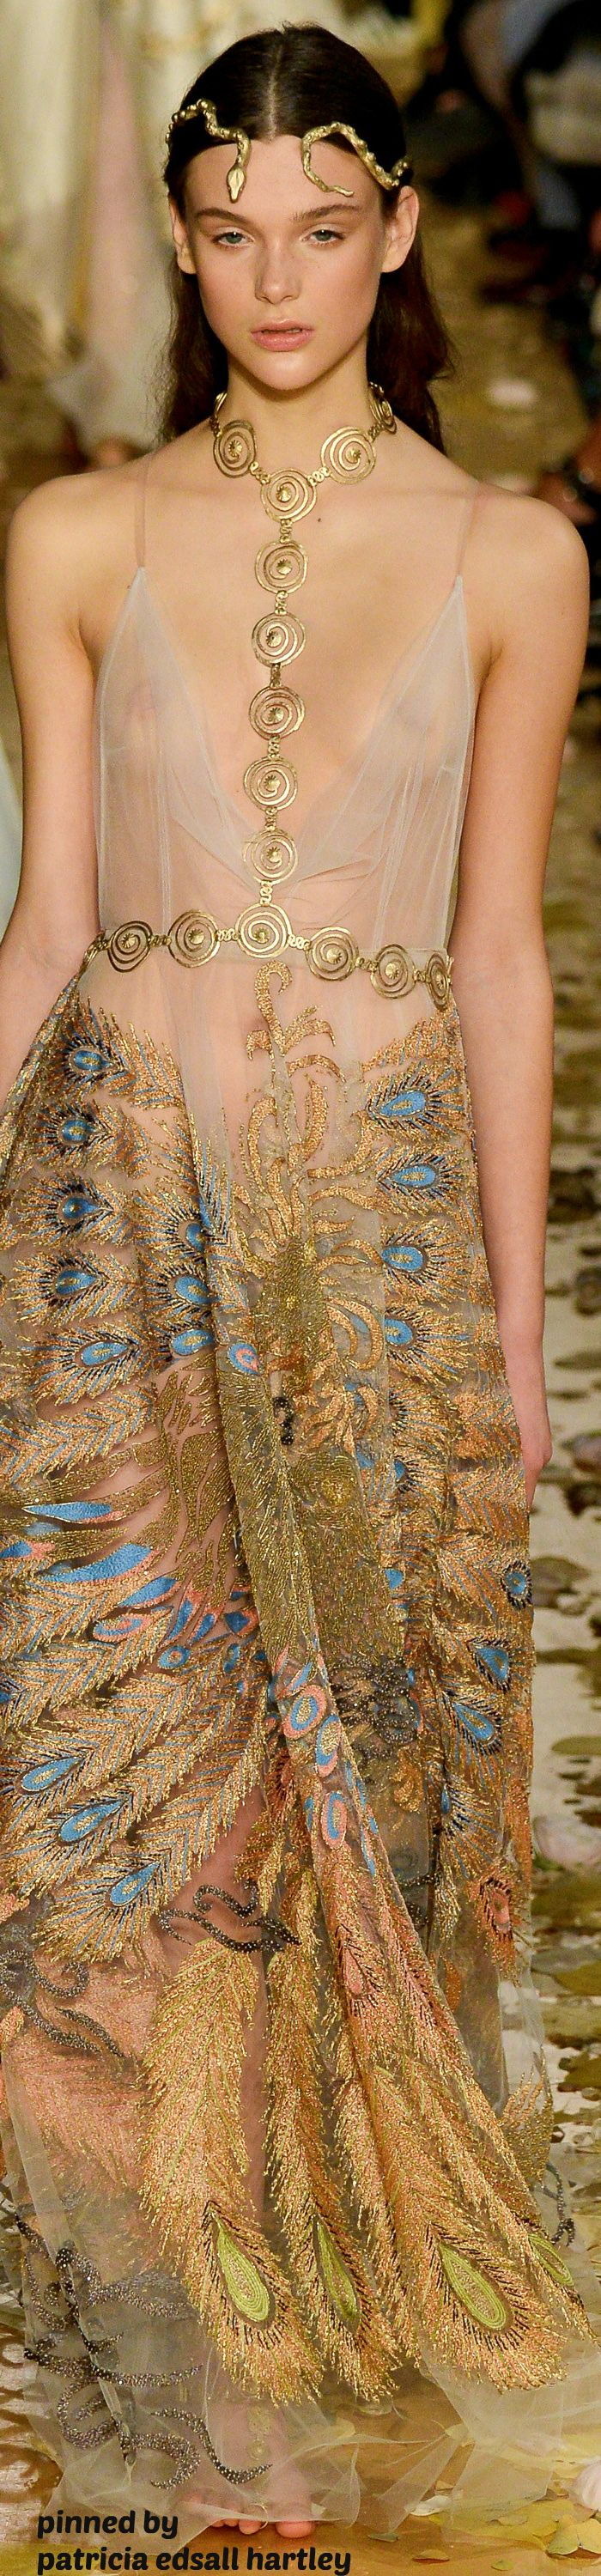 VALENTINO SPRING COUTURE 2016 FASHION SHOW. Neckpiece looks inspired by Art Smith.